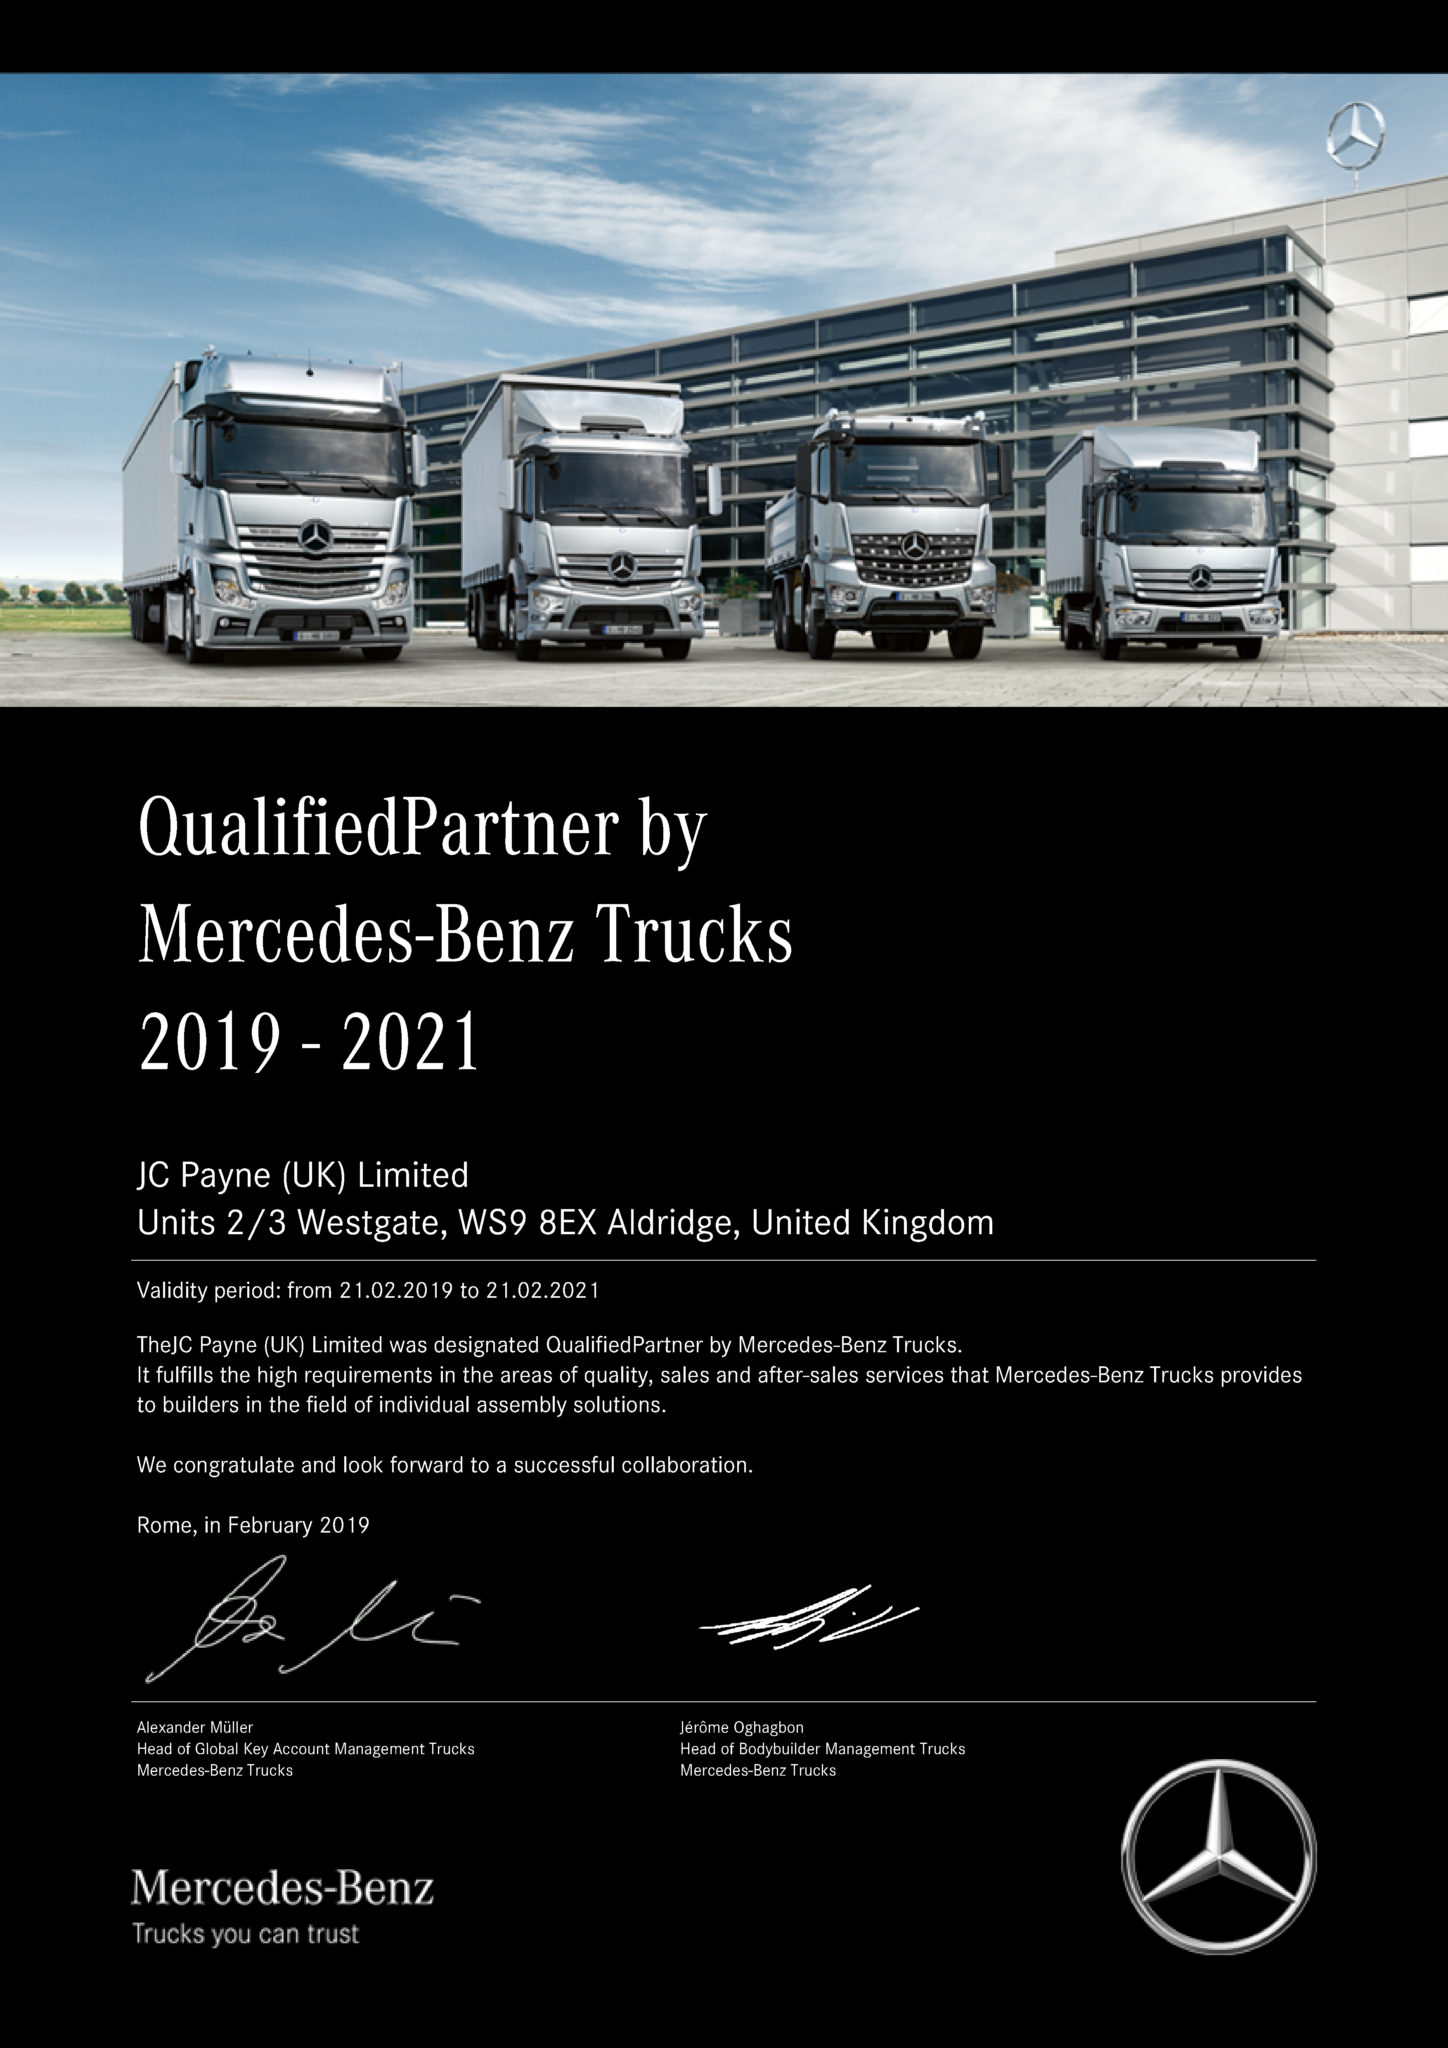 Certificate showing JC Payne Qualified Partner Status with Mercedes Benz Trucks